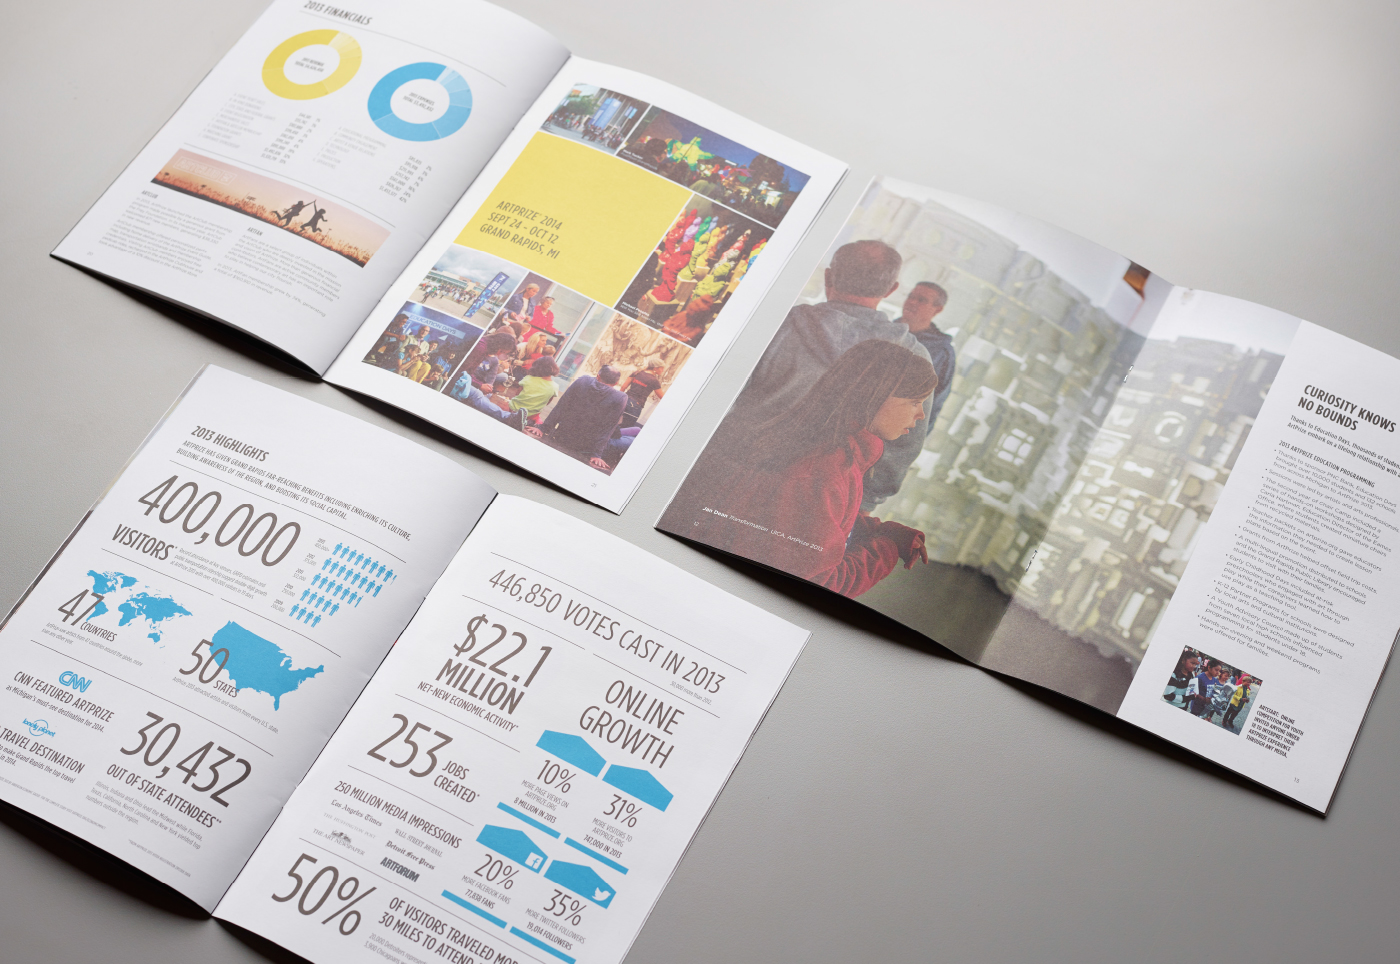 ArtPrize Annual Report Spreads